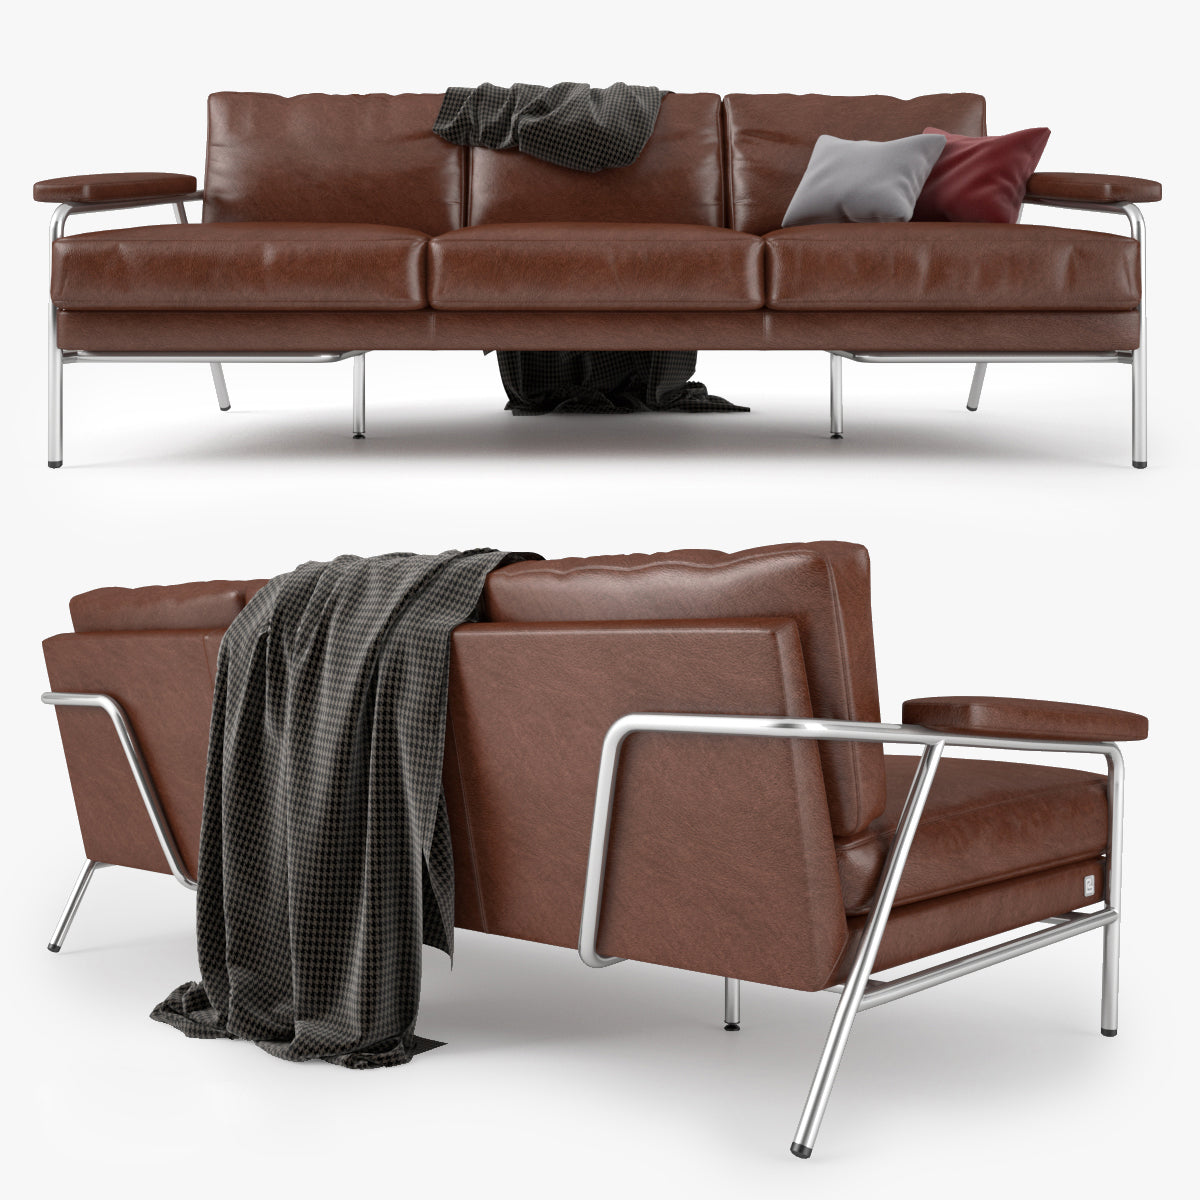 Busnelli Carpe Diem Sofa 3D Model